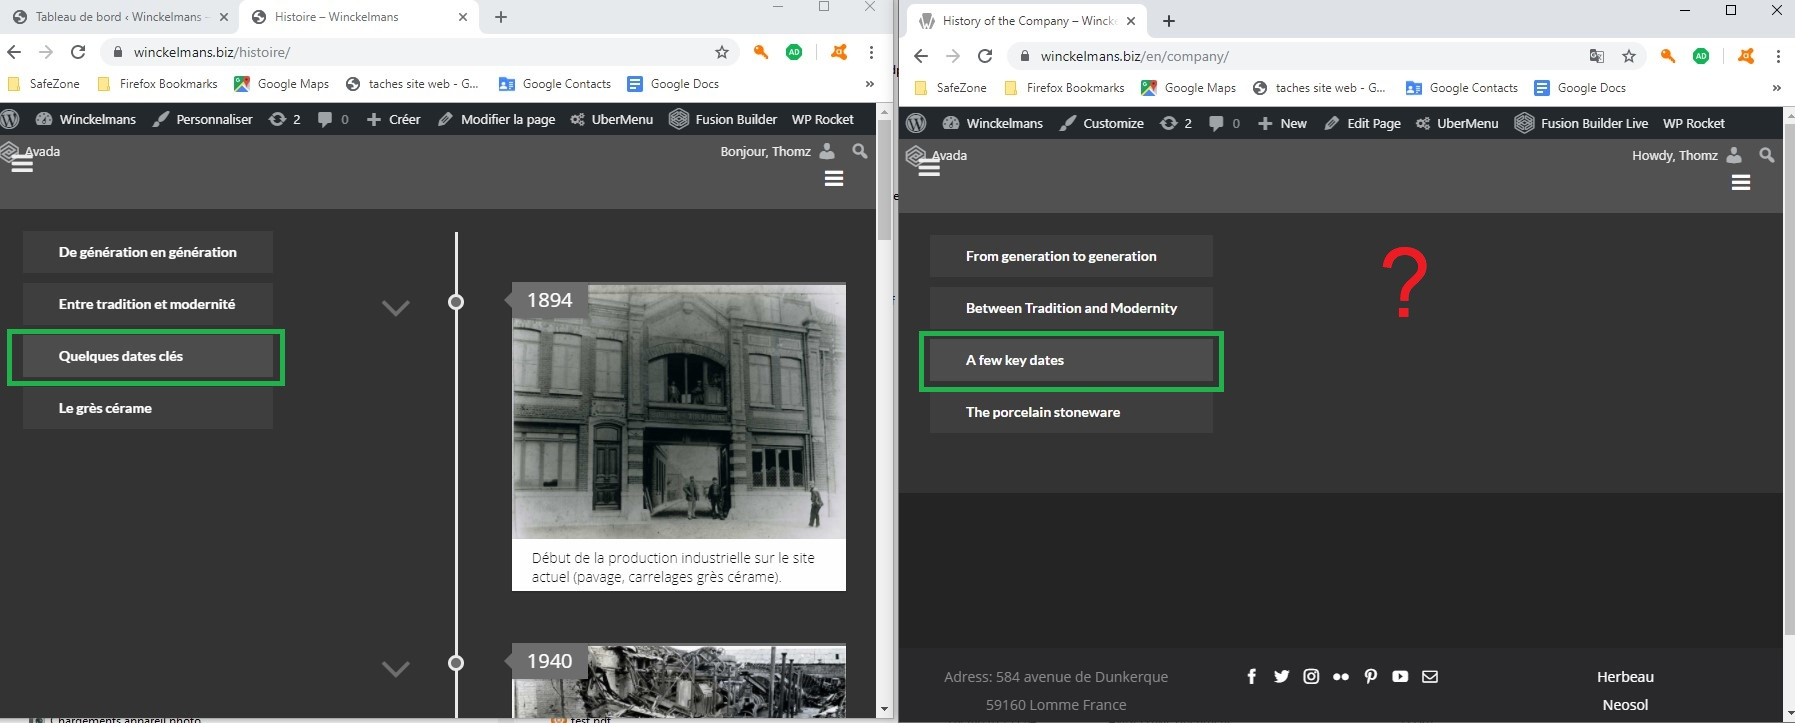 timeline-abssente-sur-page-anglaise.jpg